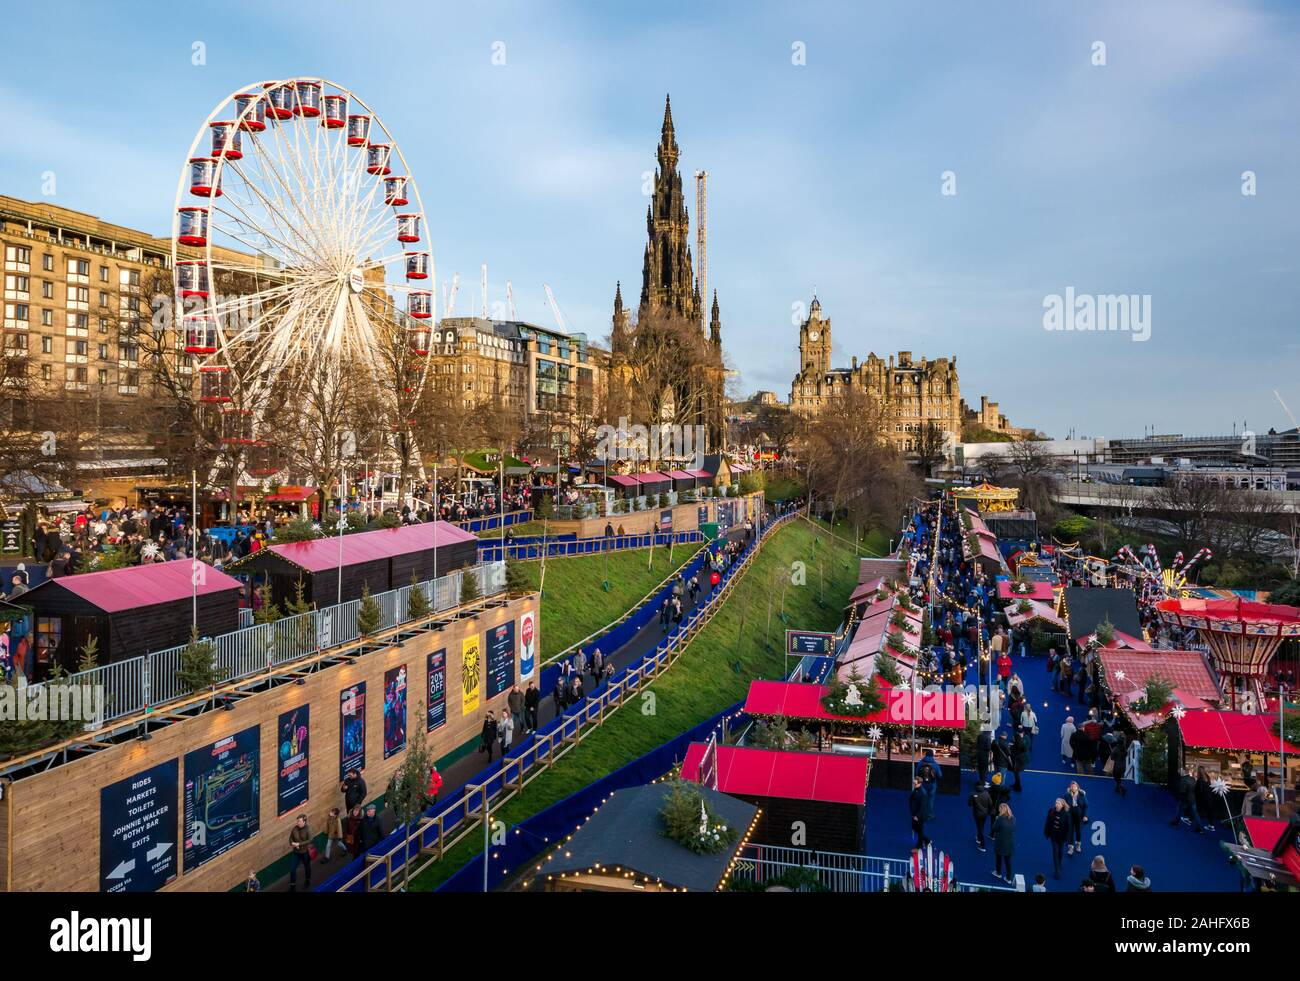 princes-street-gardens-edinburgh-scotlan